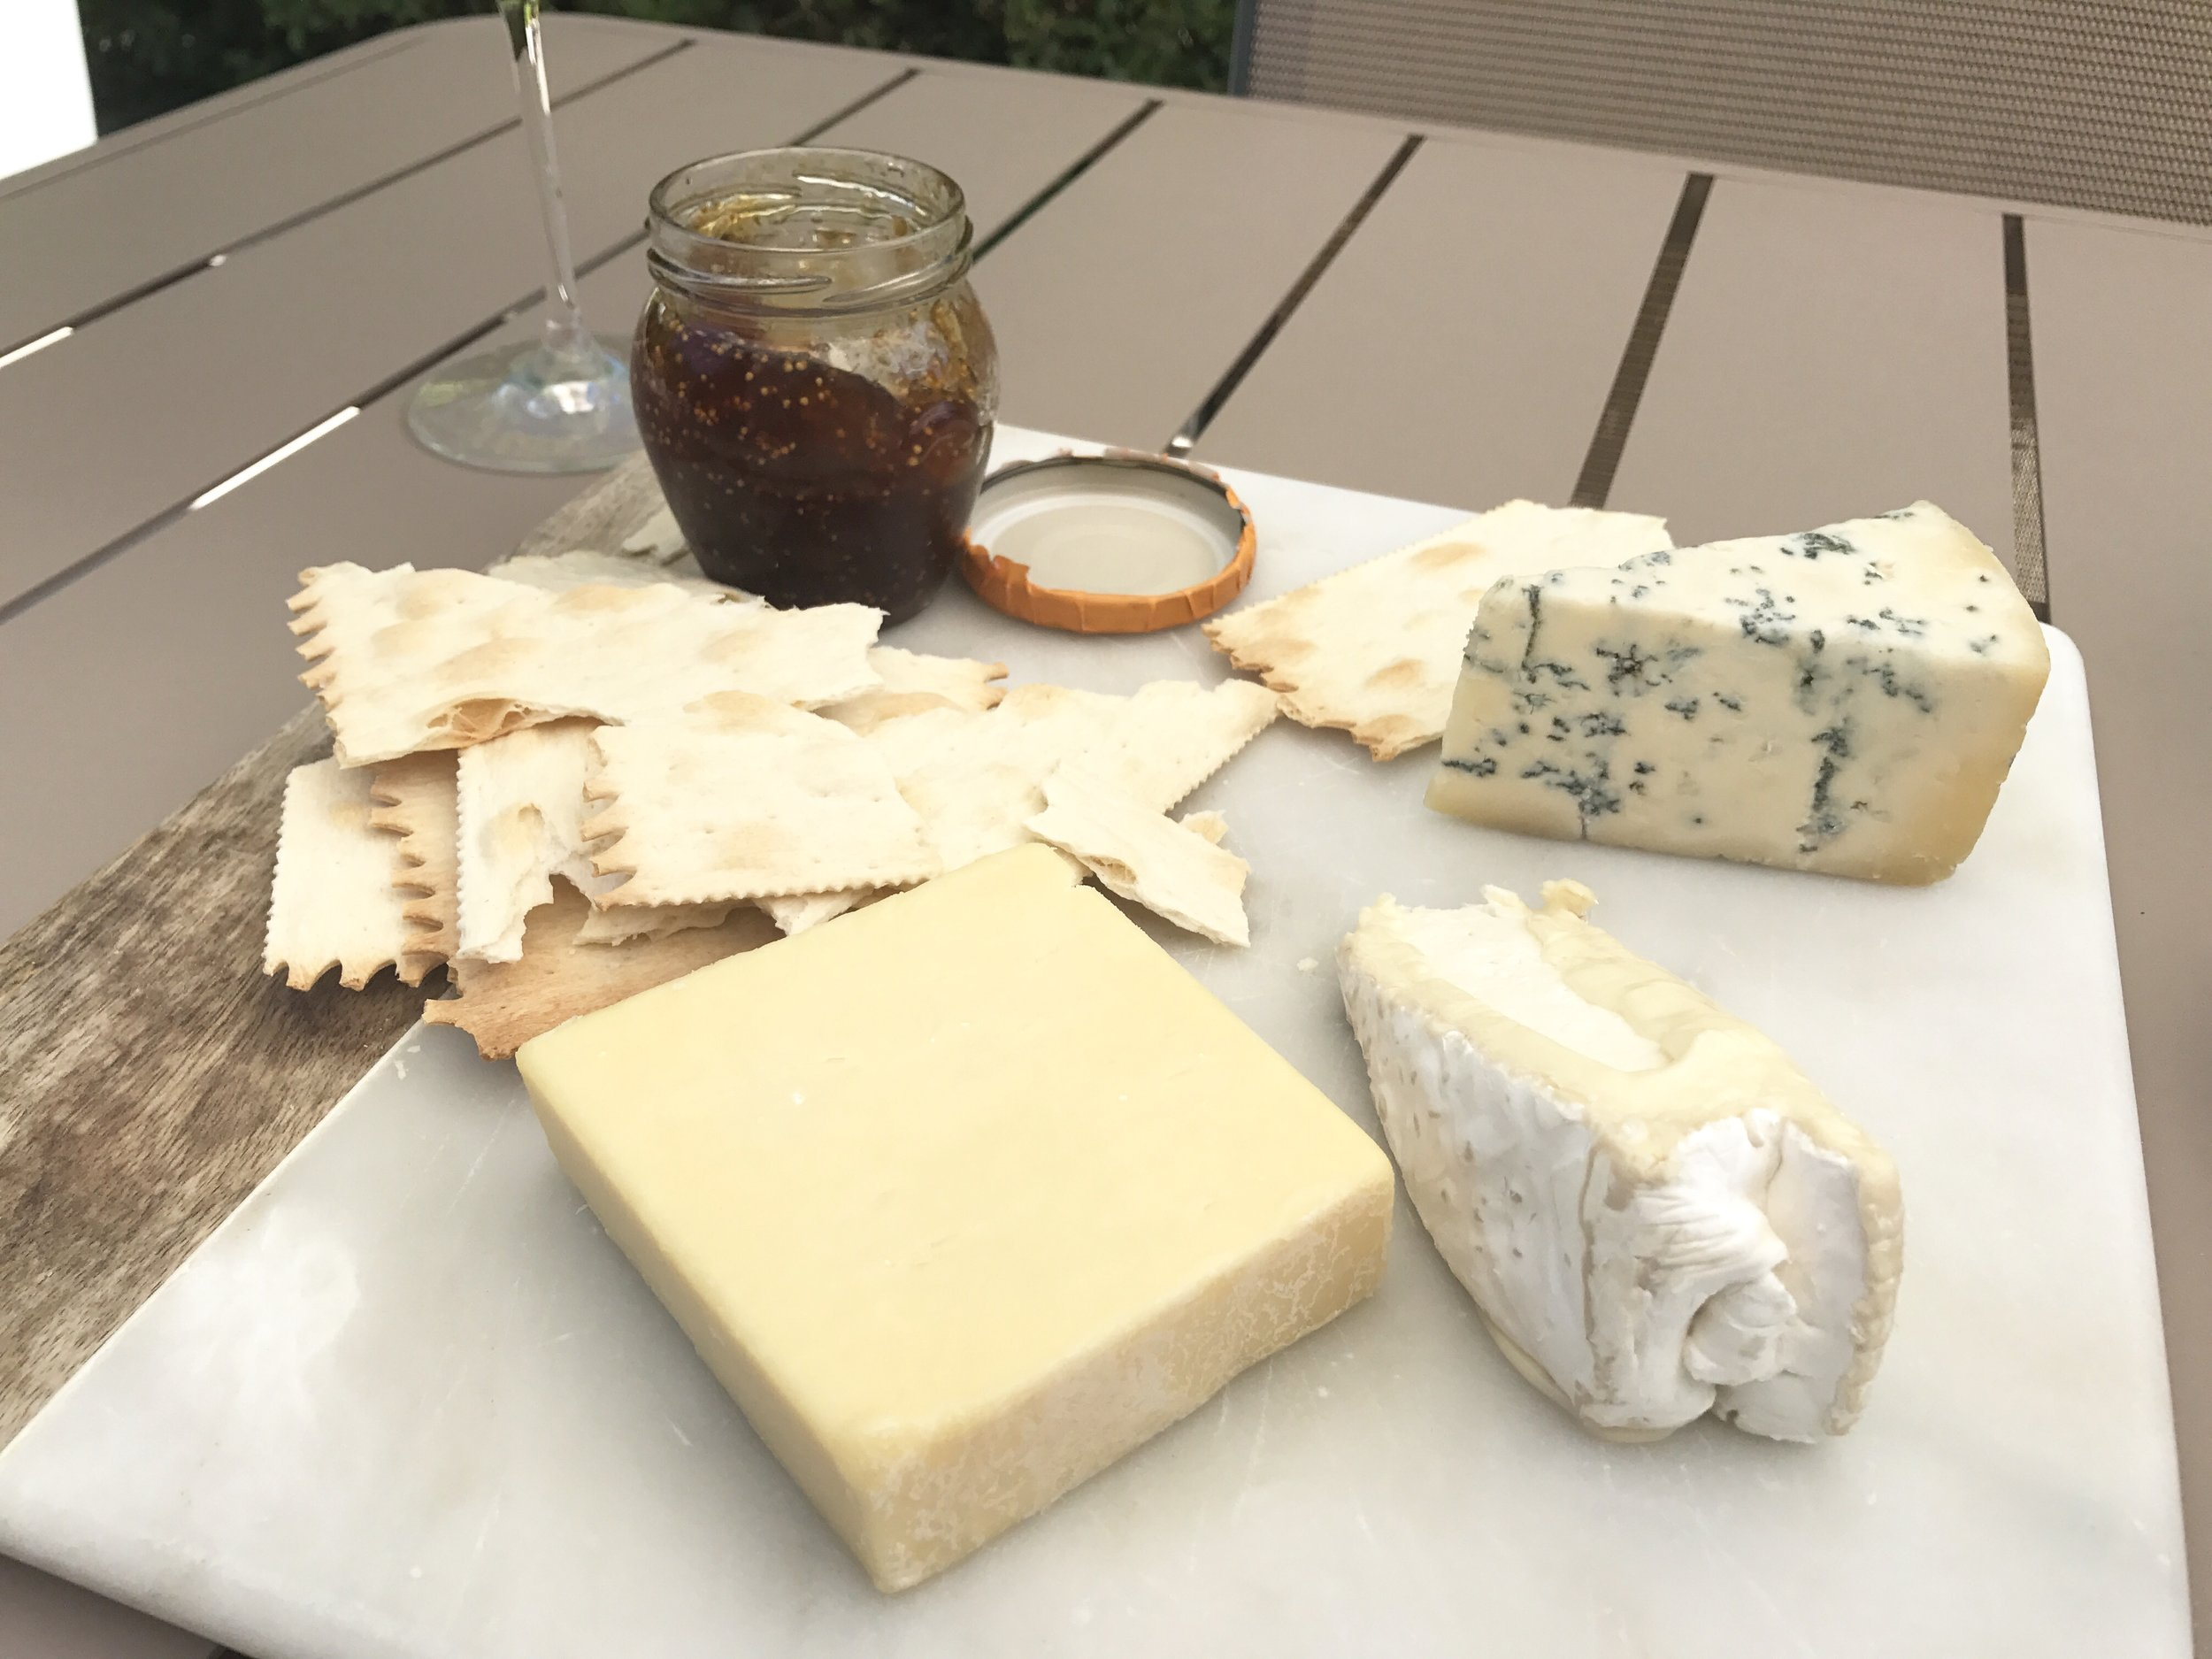 A new tradition - Saturday afternoon cheese board <3